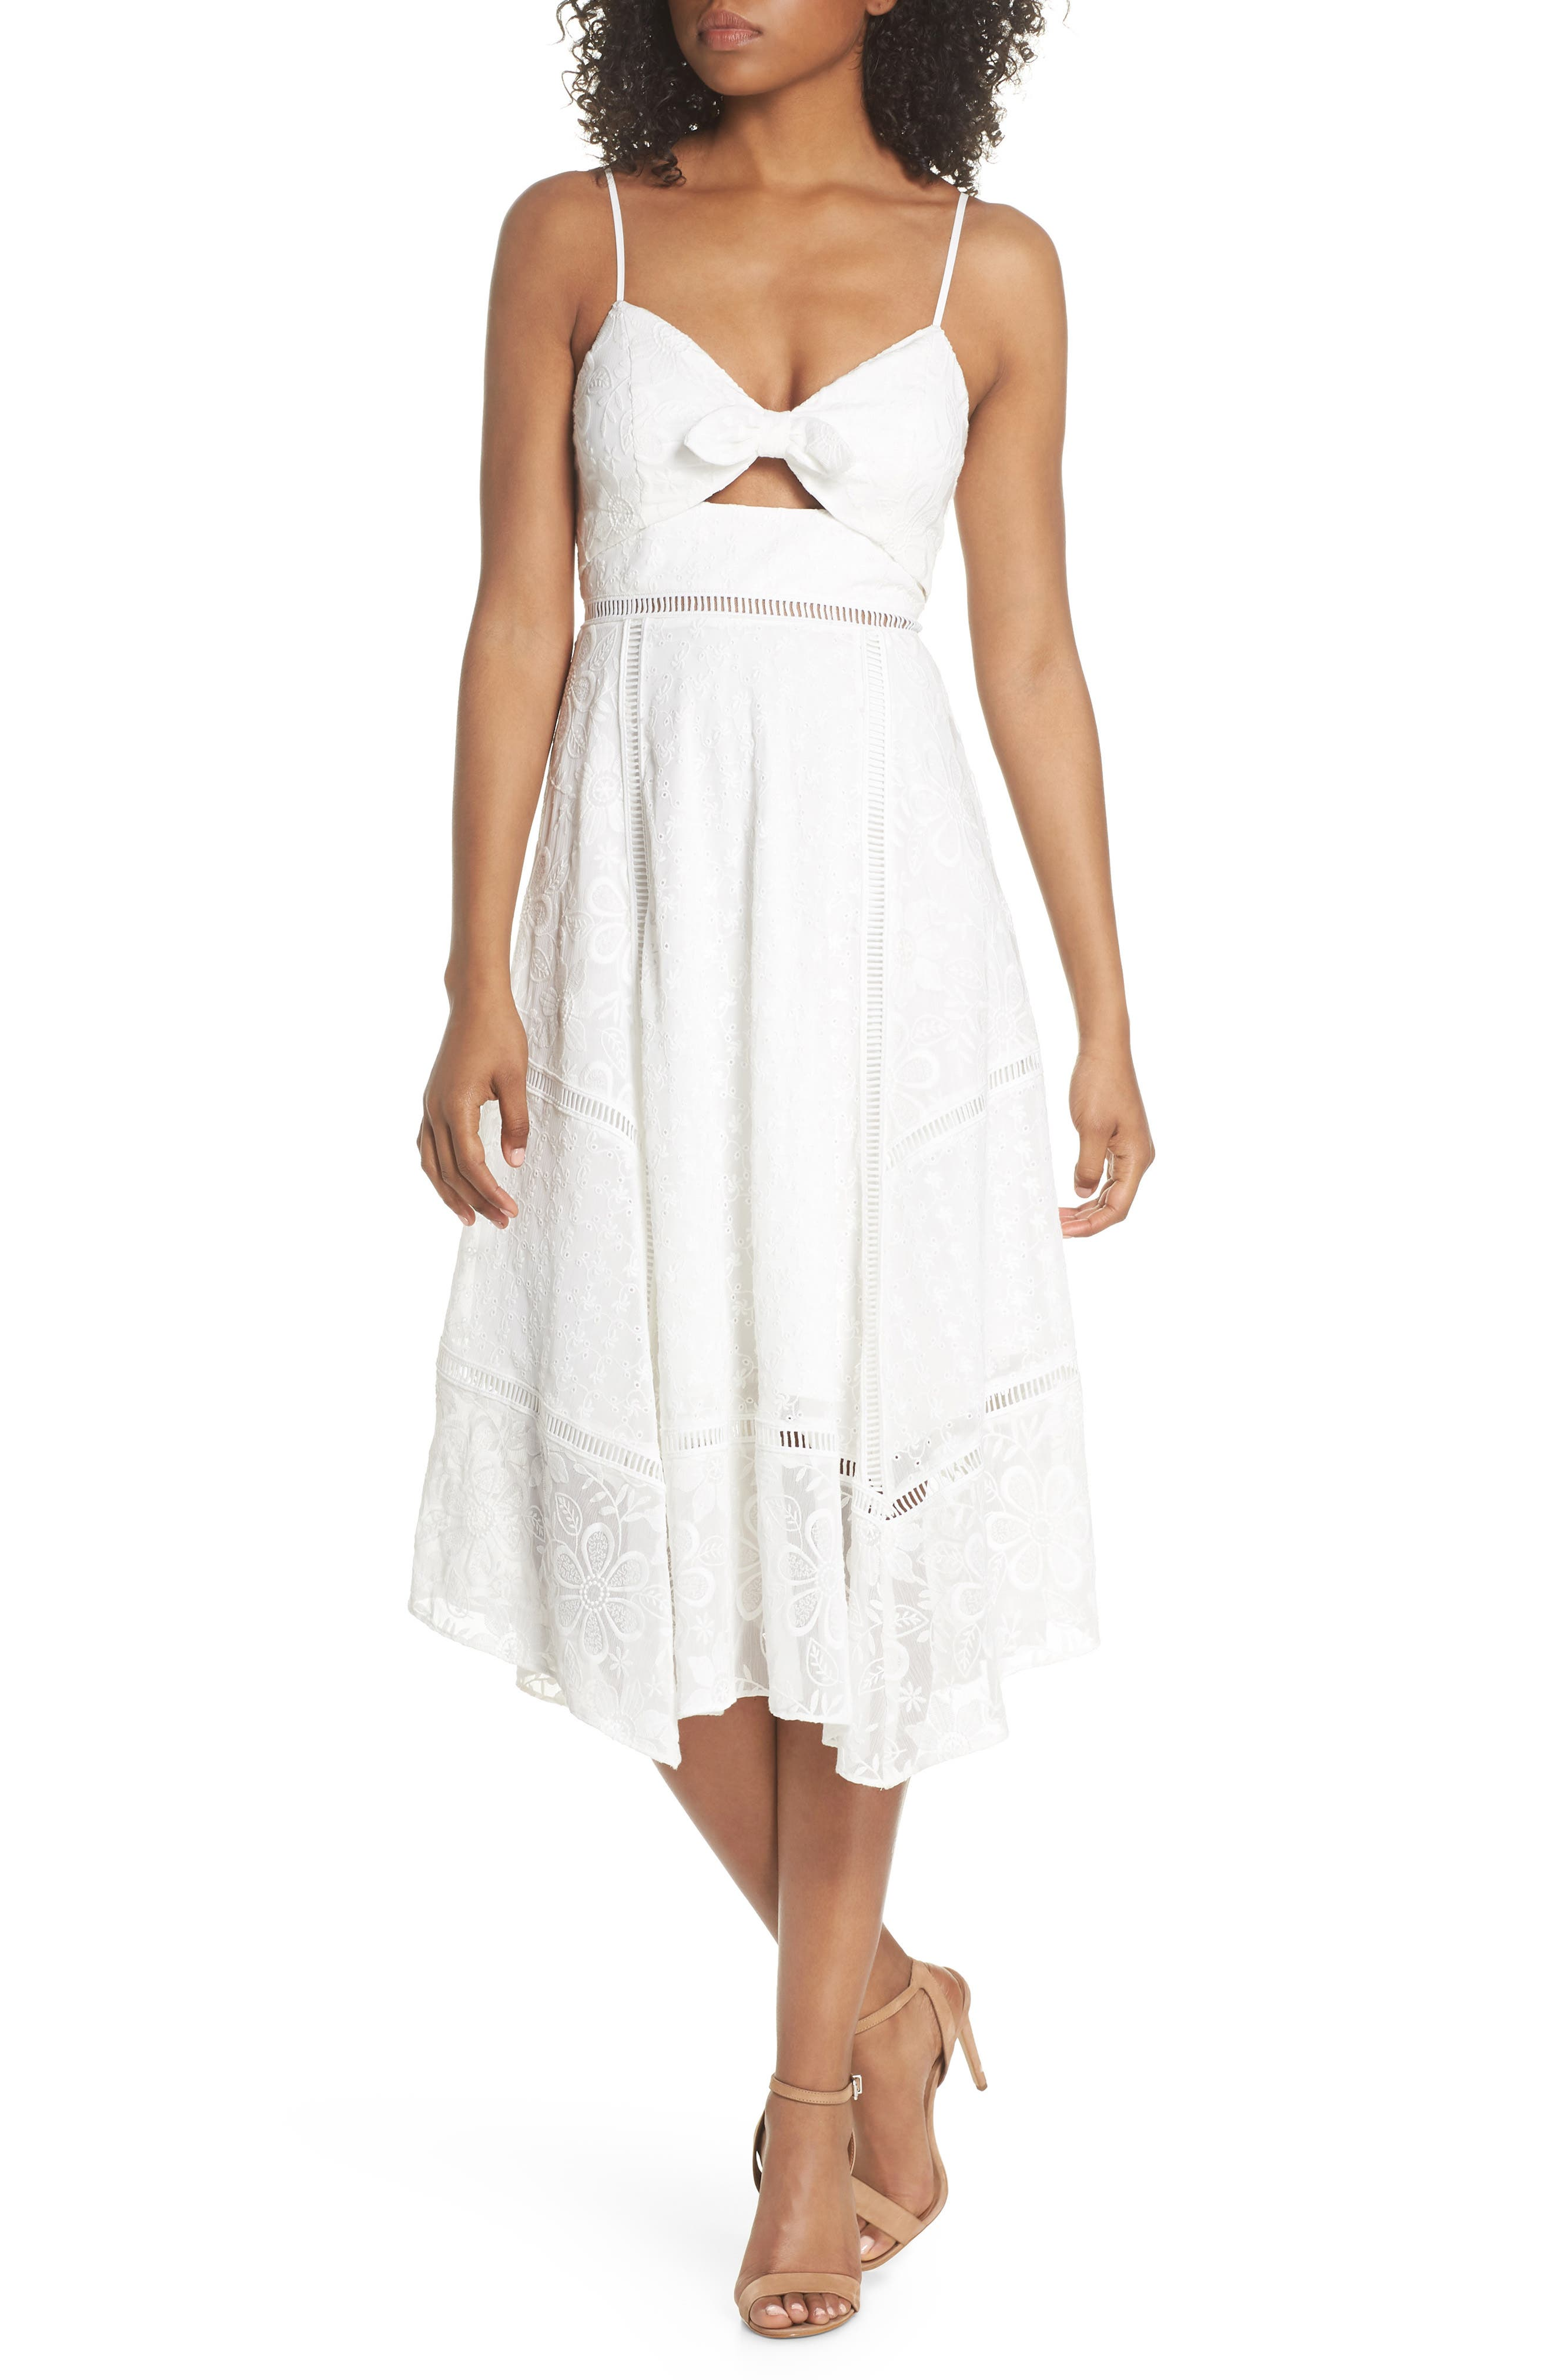 EVER NEW,                             Broderie Anglaise Knot Detail Dress,                             Main thumbnail 1, color,                             100